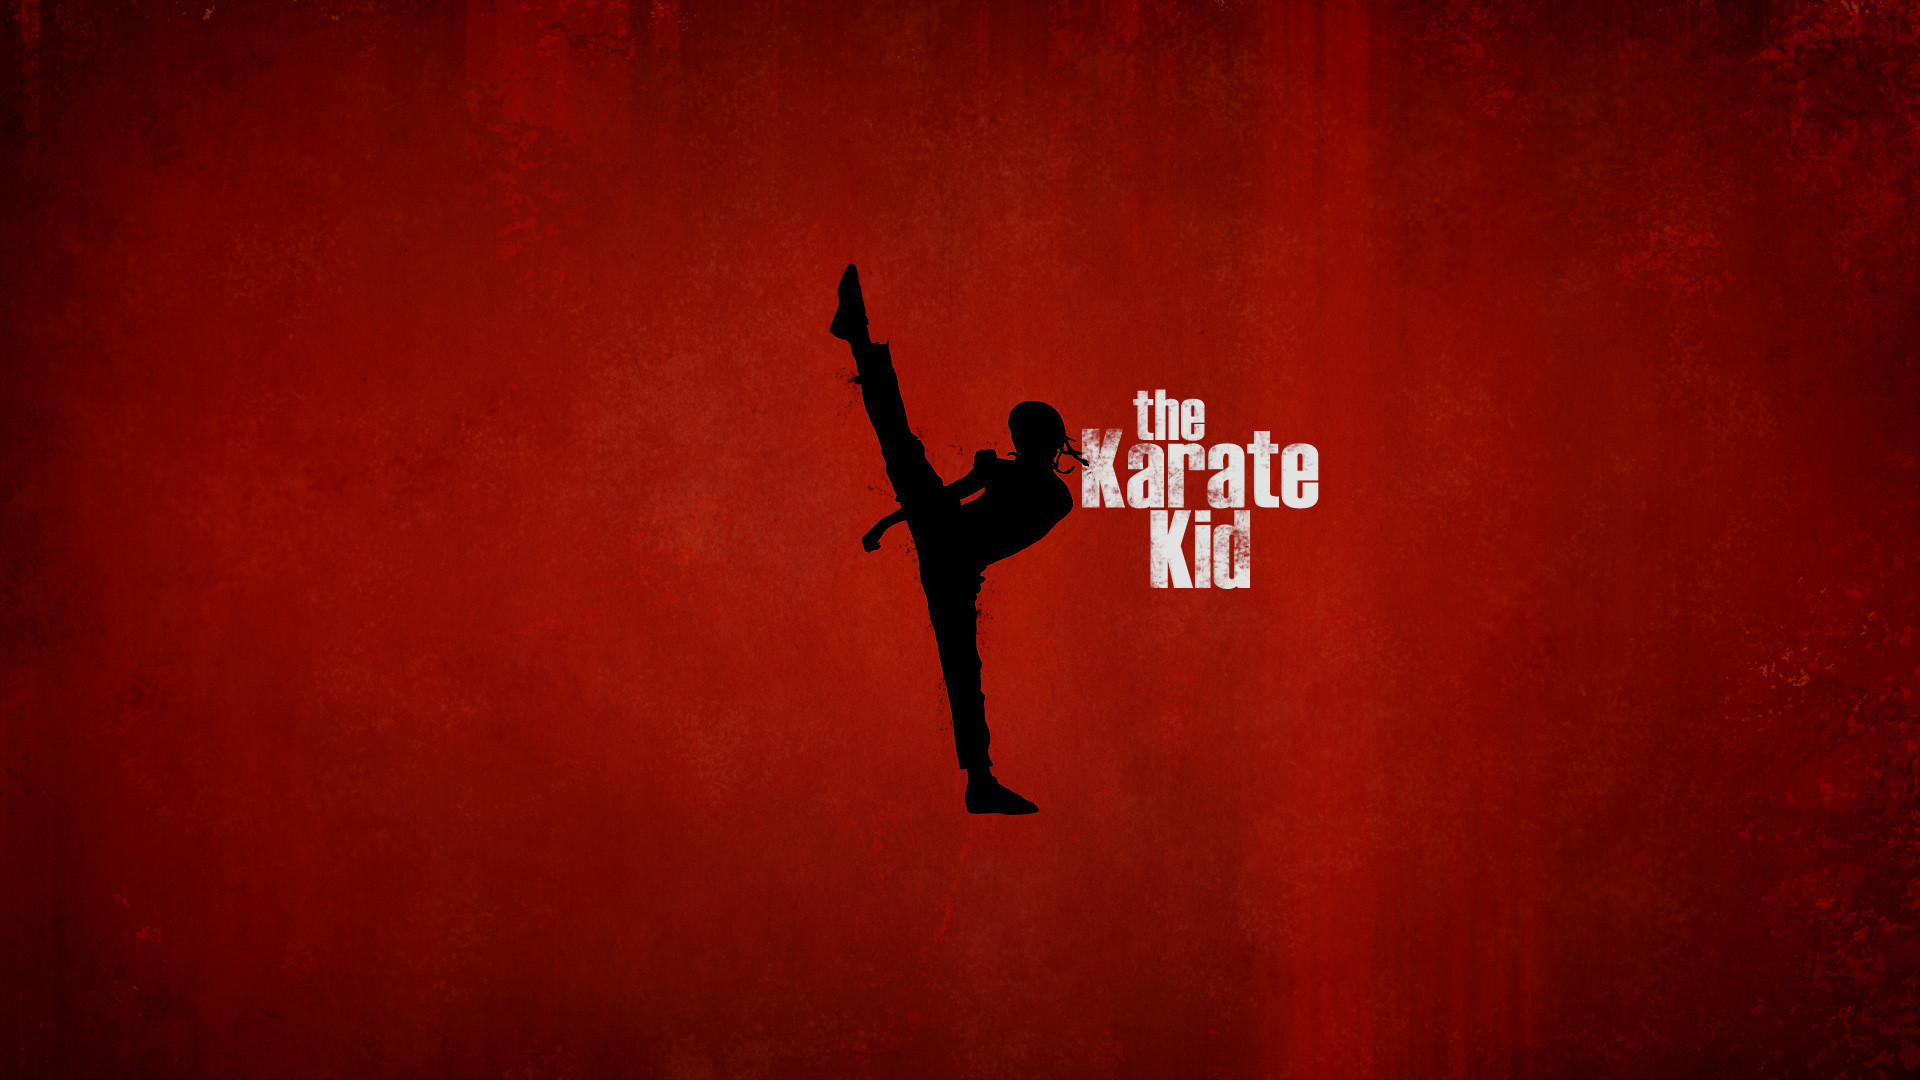 Res: 1920x1080, The Karate Kid Wallpaper